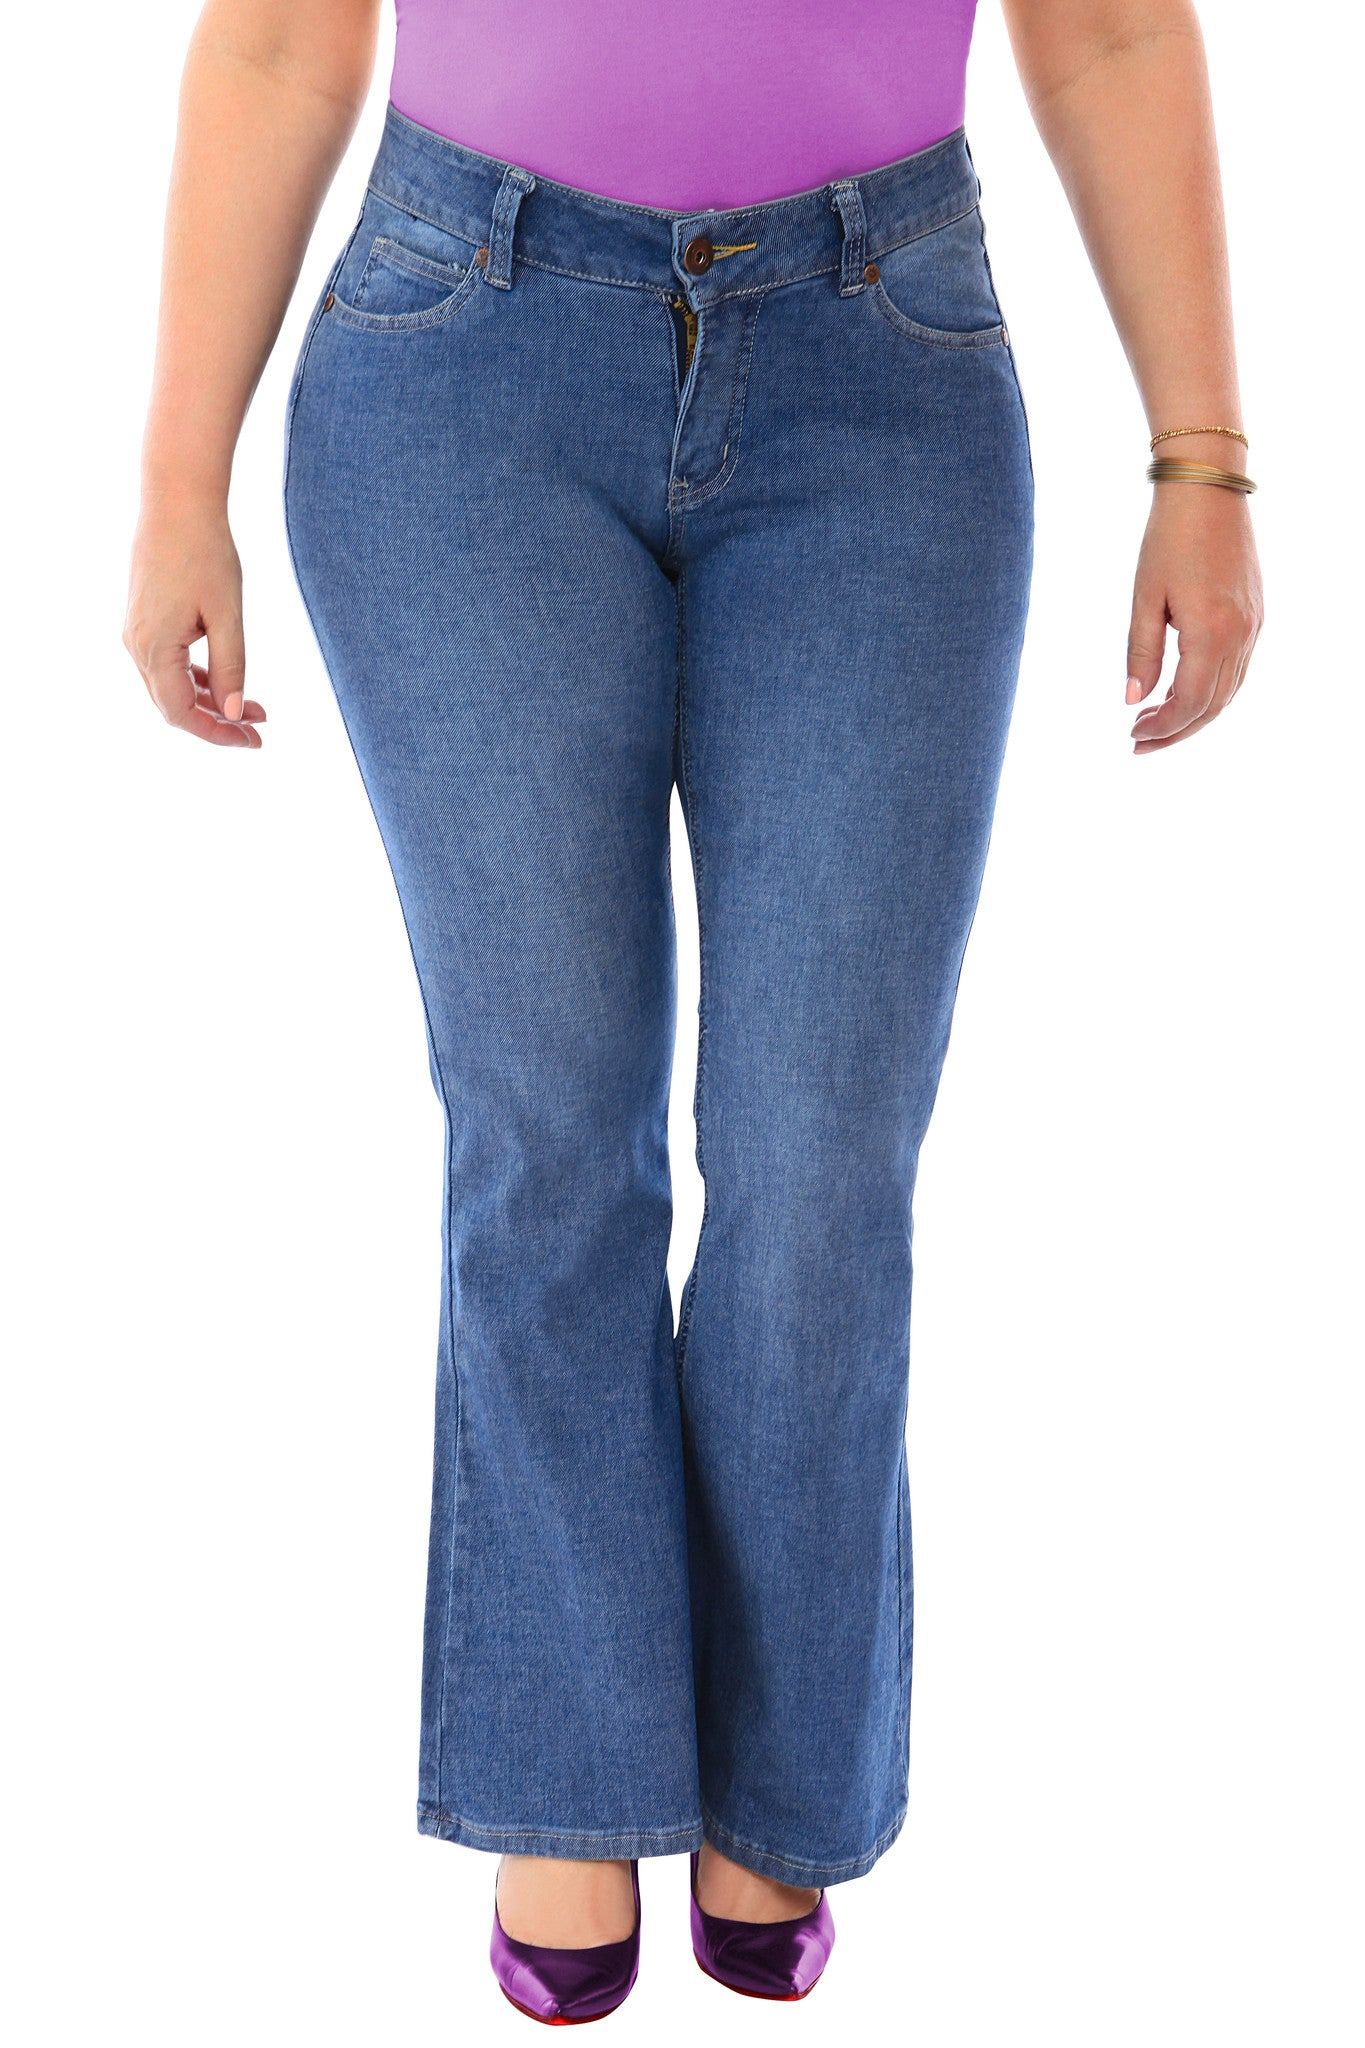 360 Stretch Mid-Rise 70's Inspired Flare Denim Jeans in Medium Blue